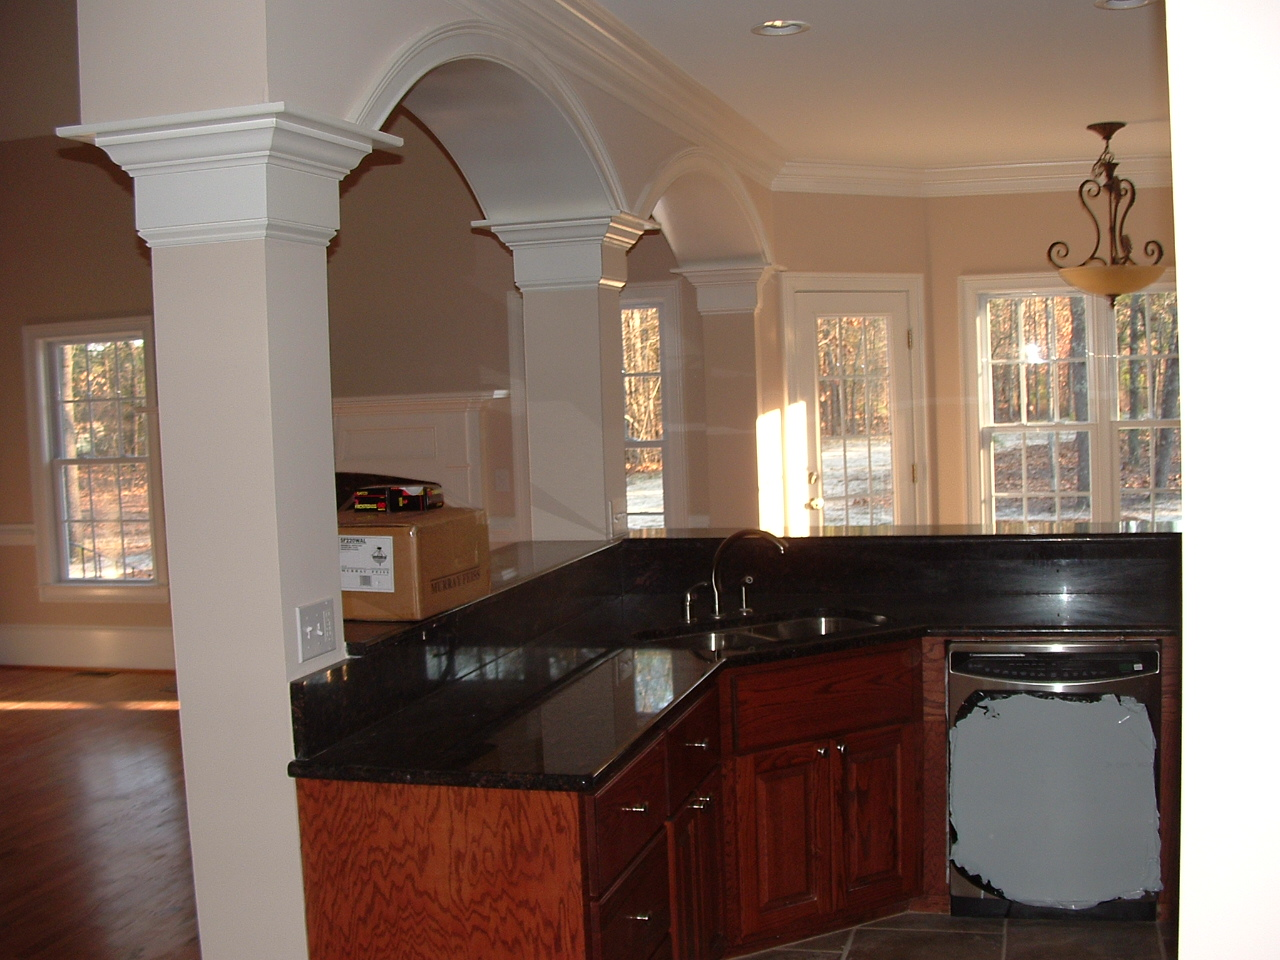 Refinished mahogany kitchen hausslers kitchens cabinet refinishing - Mahogany Kitchen Cabinets Free Mahogany Kitchen Cabinets With Espresso Kitchen Cabinets With Granite Tags Best Dark